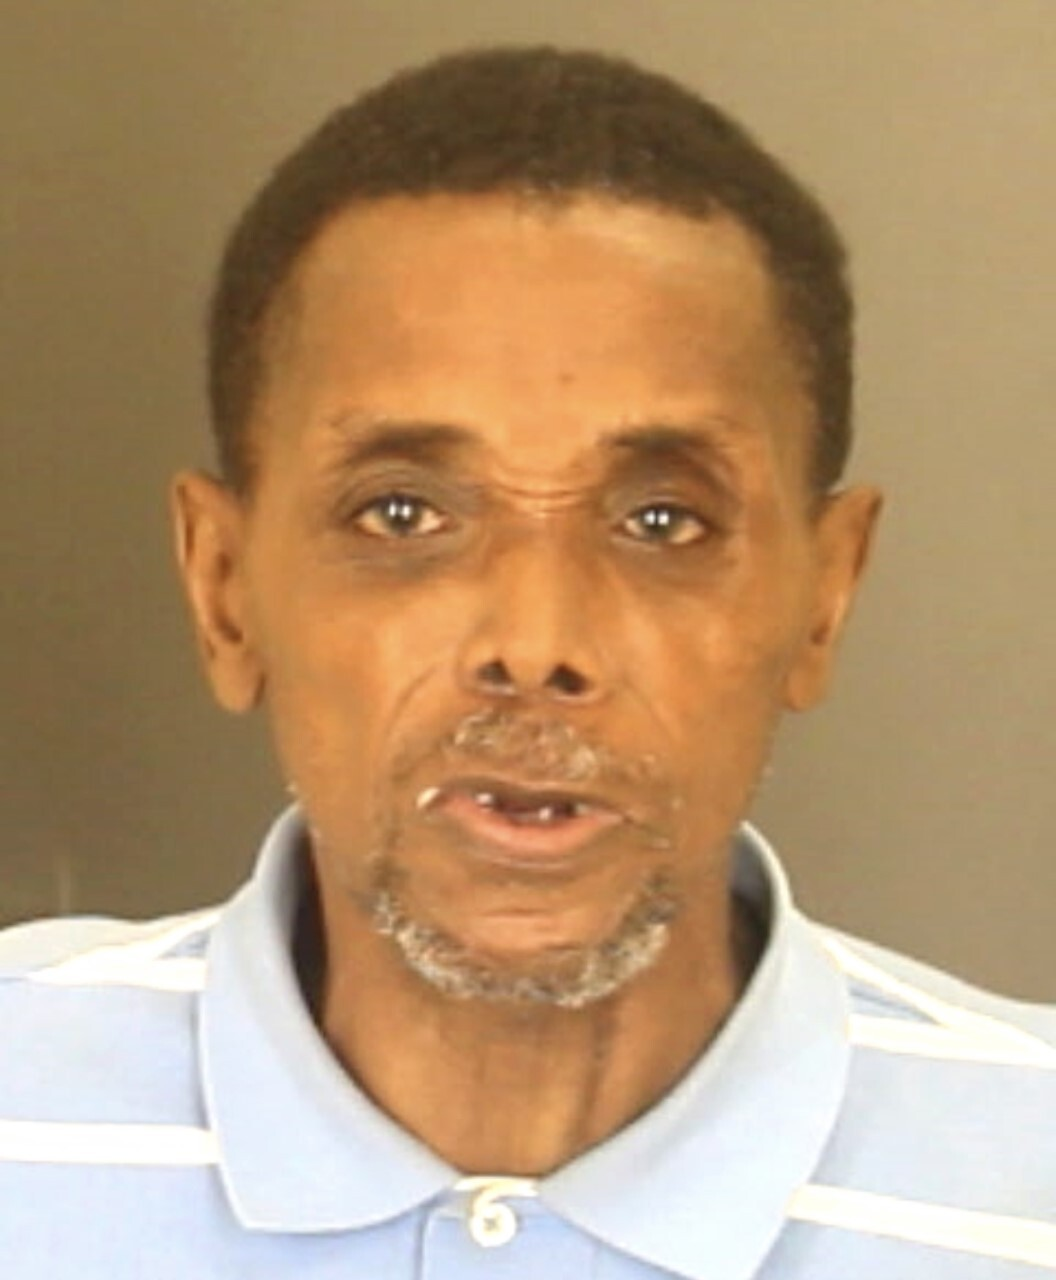 Herschel Cooper arrested and charged.